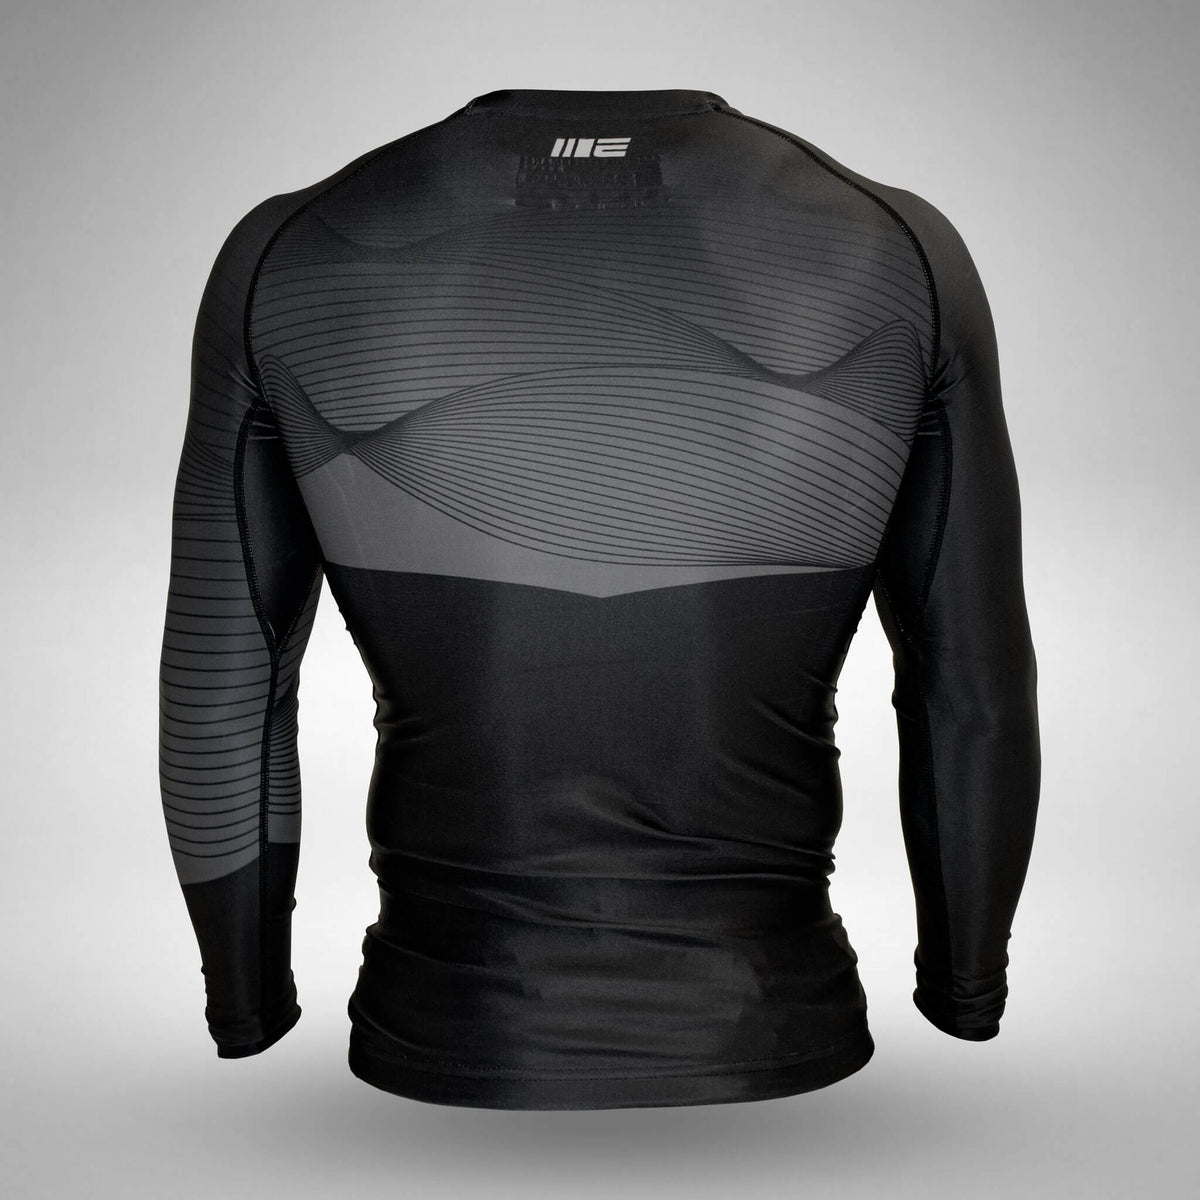 Engage Competition Graded Long Sleeve Rash Guards Competition Graded Rash Guards Engage MMA Online Fight Store for Apparel, Fightwear and Fight Gear Equipment